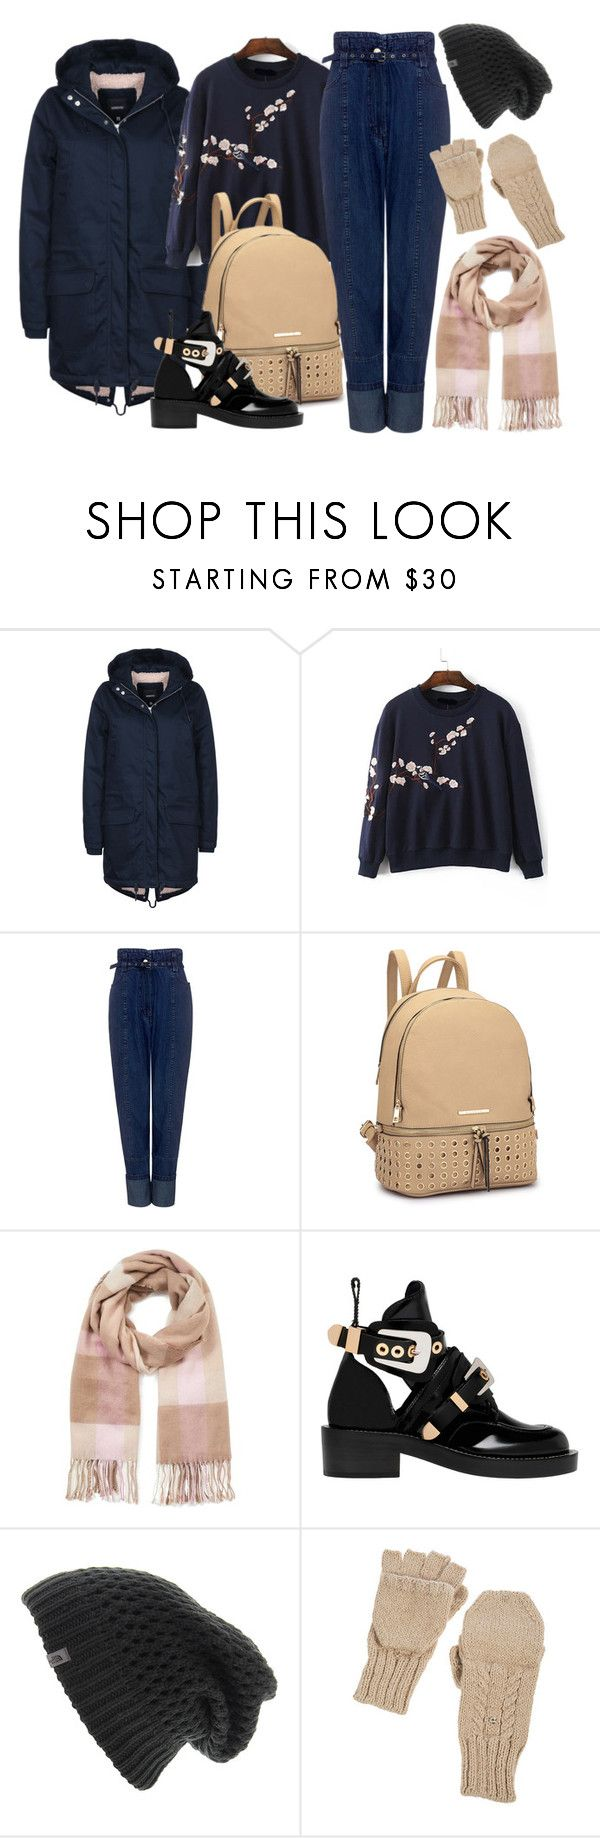 """Walk"" by okcini9 ❤ liked on Polyvore featuring Wemoto, Rachel Comey, Miss Selfridge, Balenciaga, The North Face, Overland Sheepskin Co., StreetStyle, denim, booties and autumn"